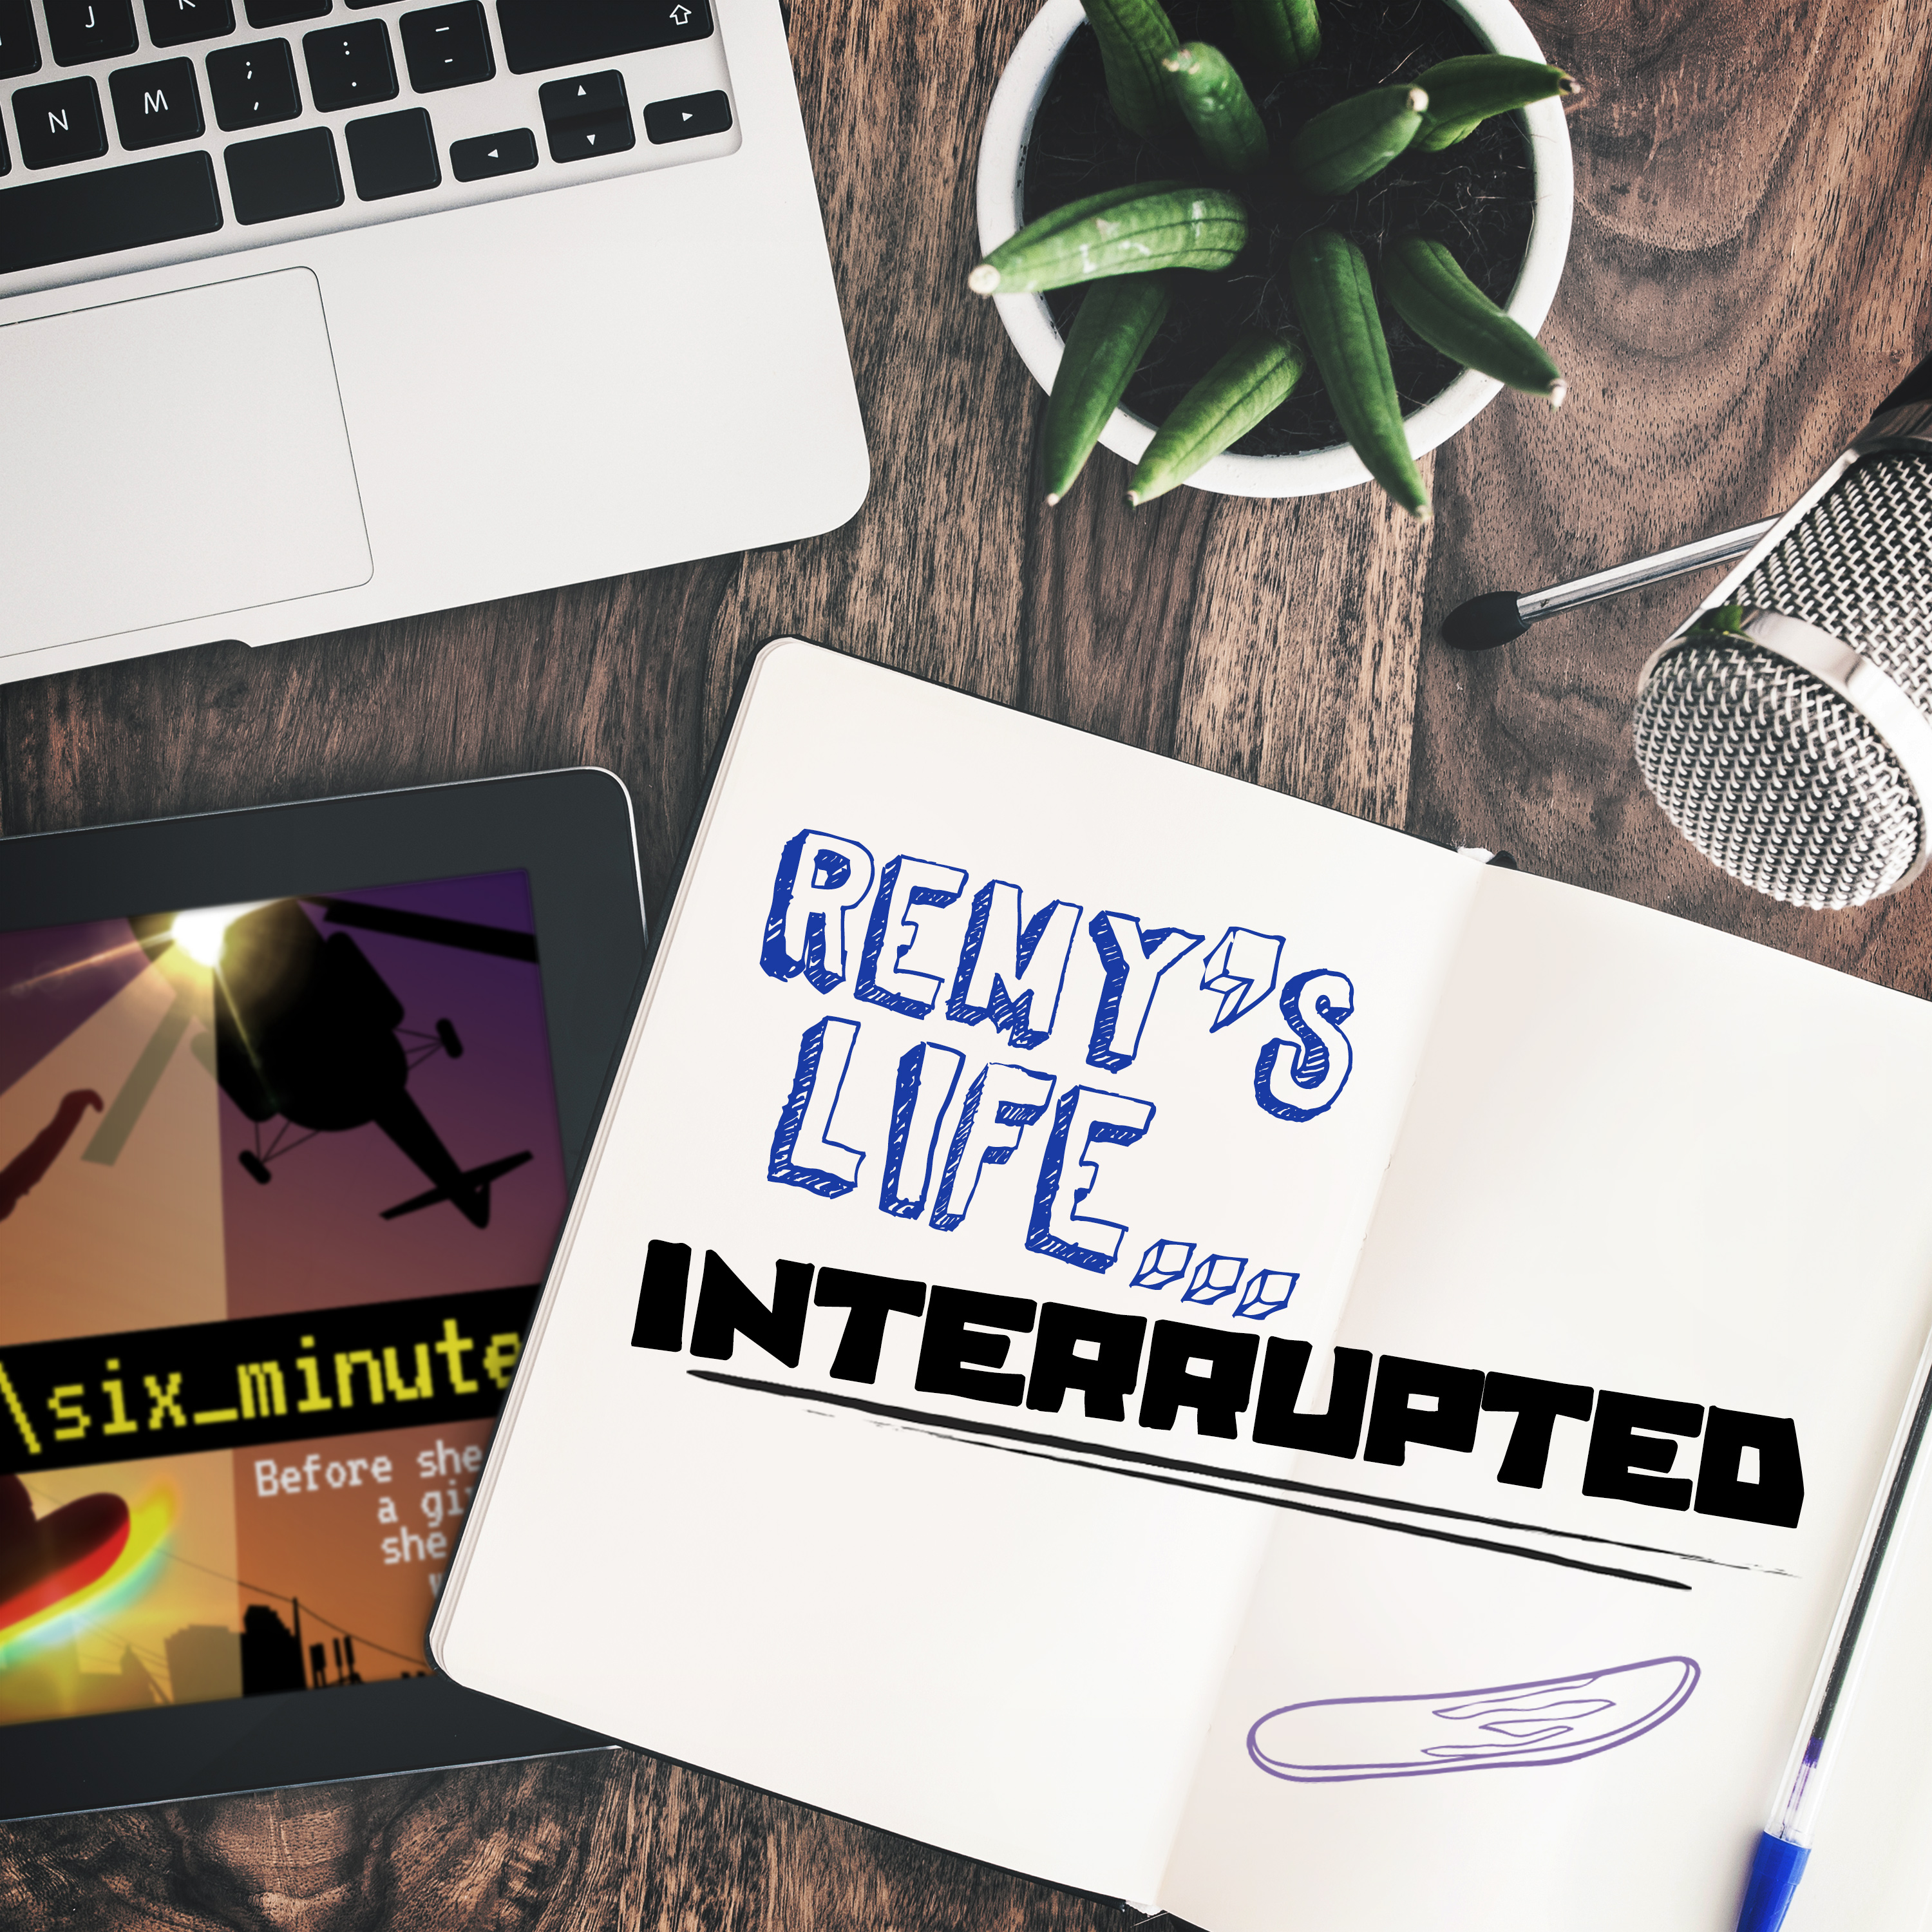 Remy's Life Interrupted: EP62